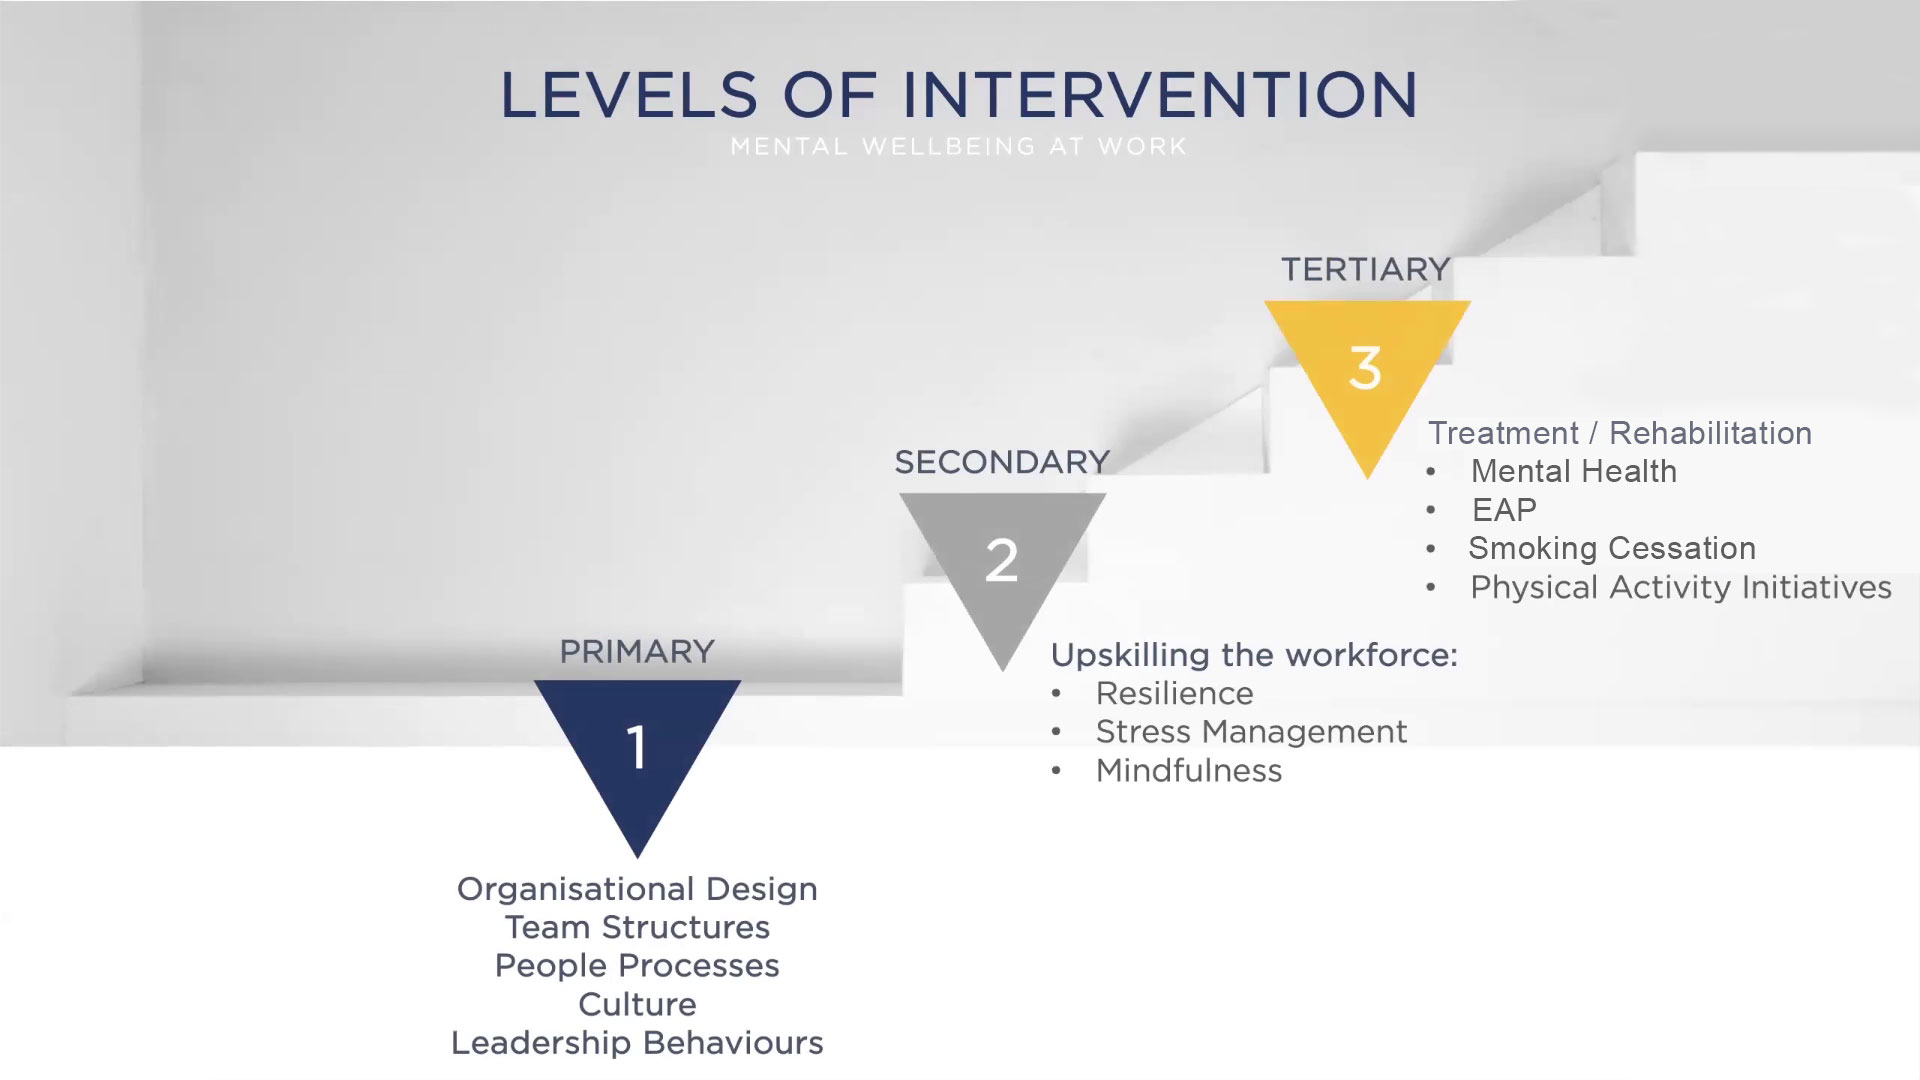 Levels of intvention chart